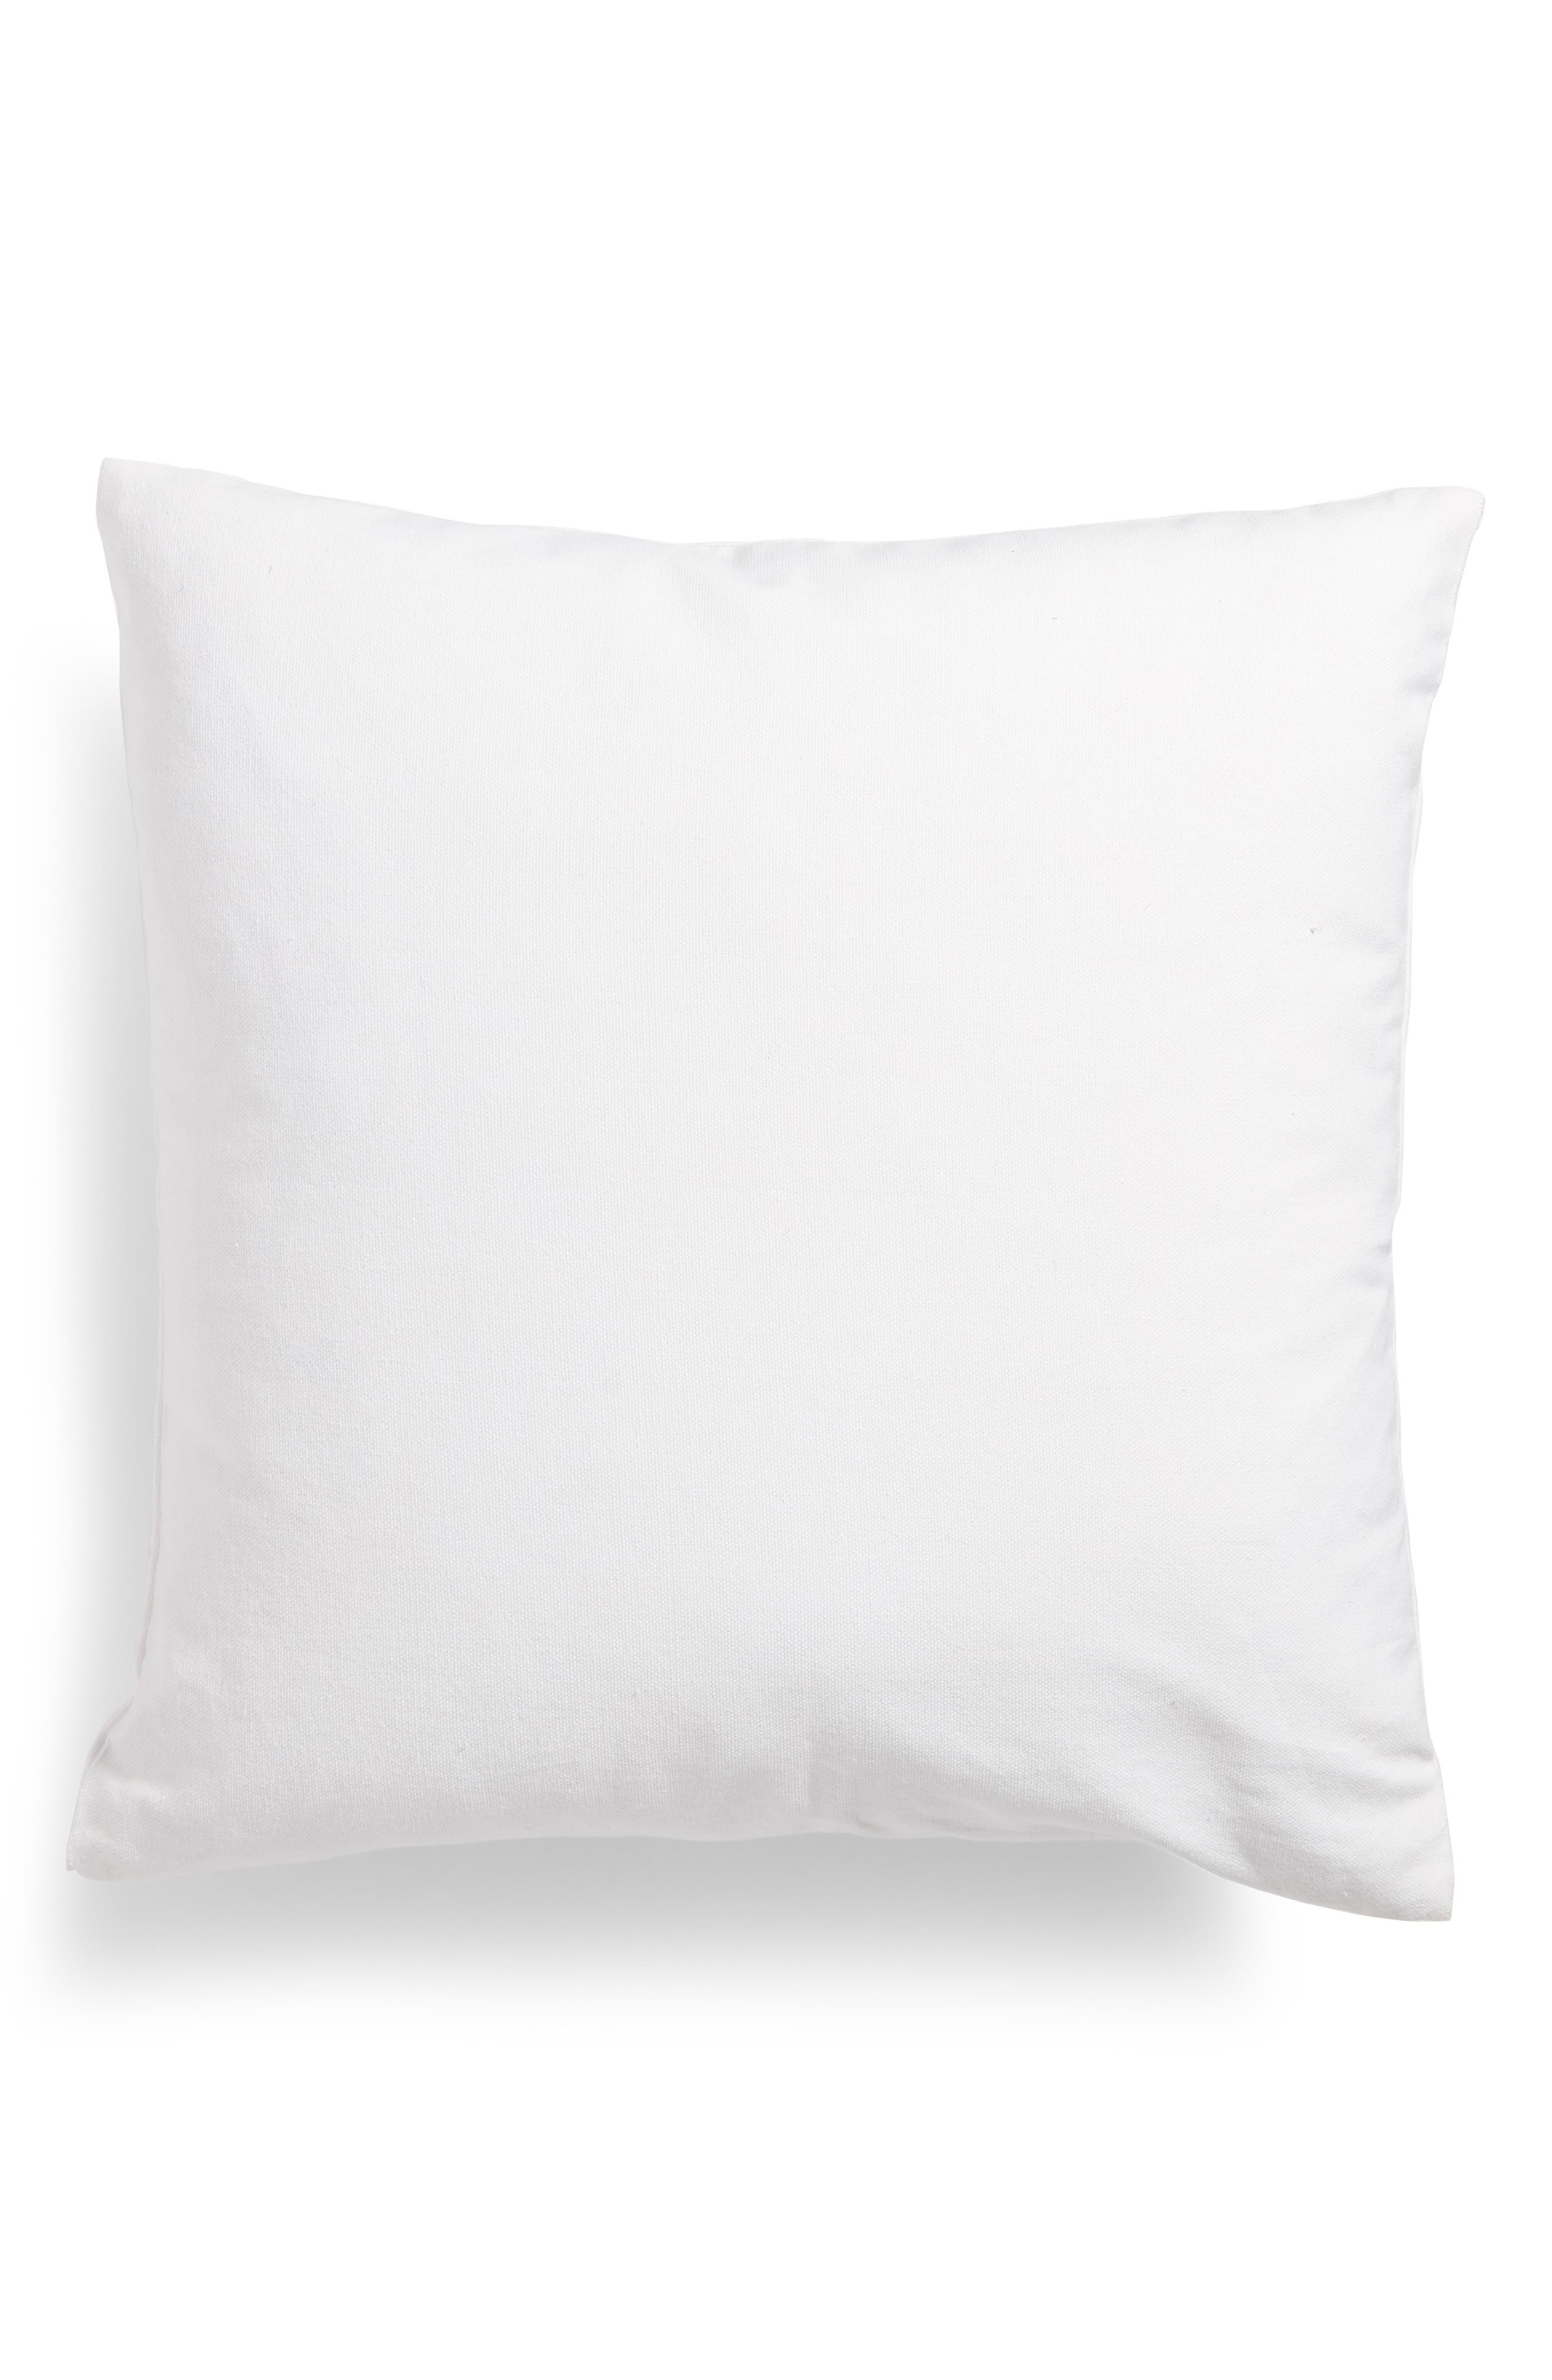 Bree Embroidered Accent Pillow,                             Alternate thumbnail 2, color,                             100